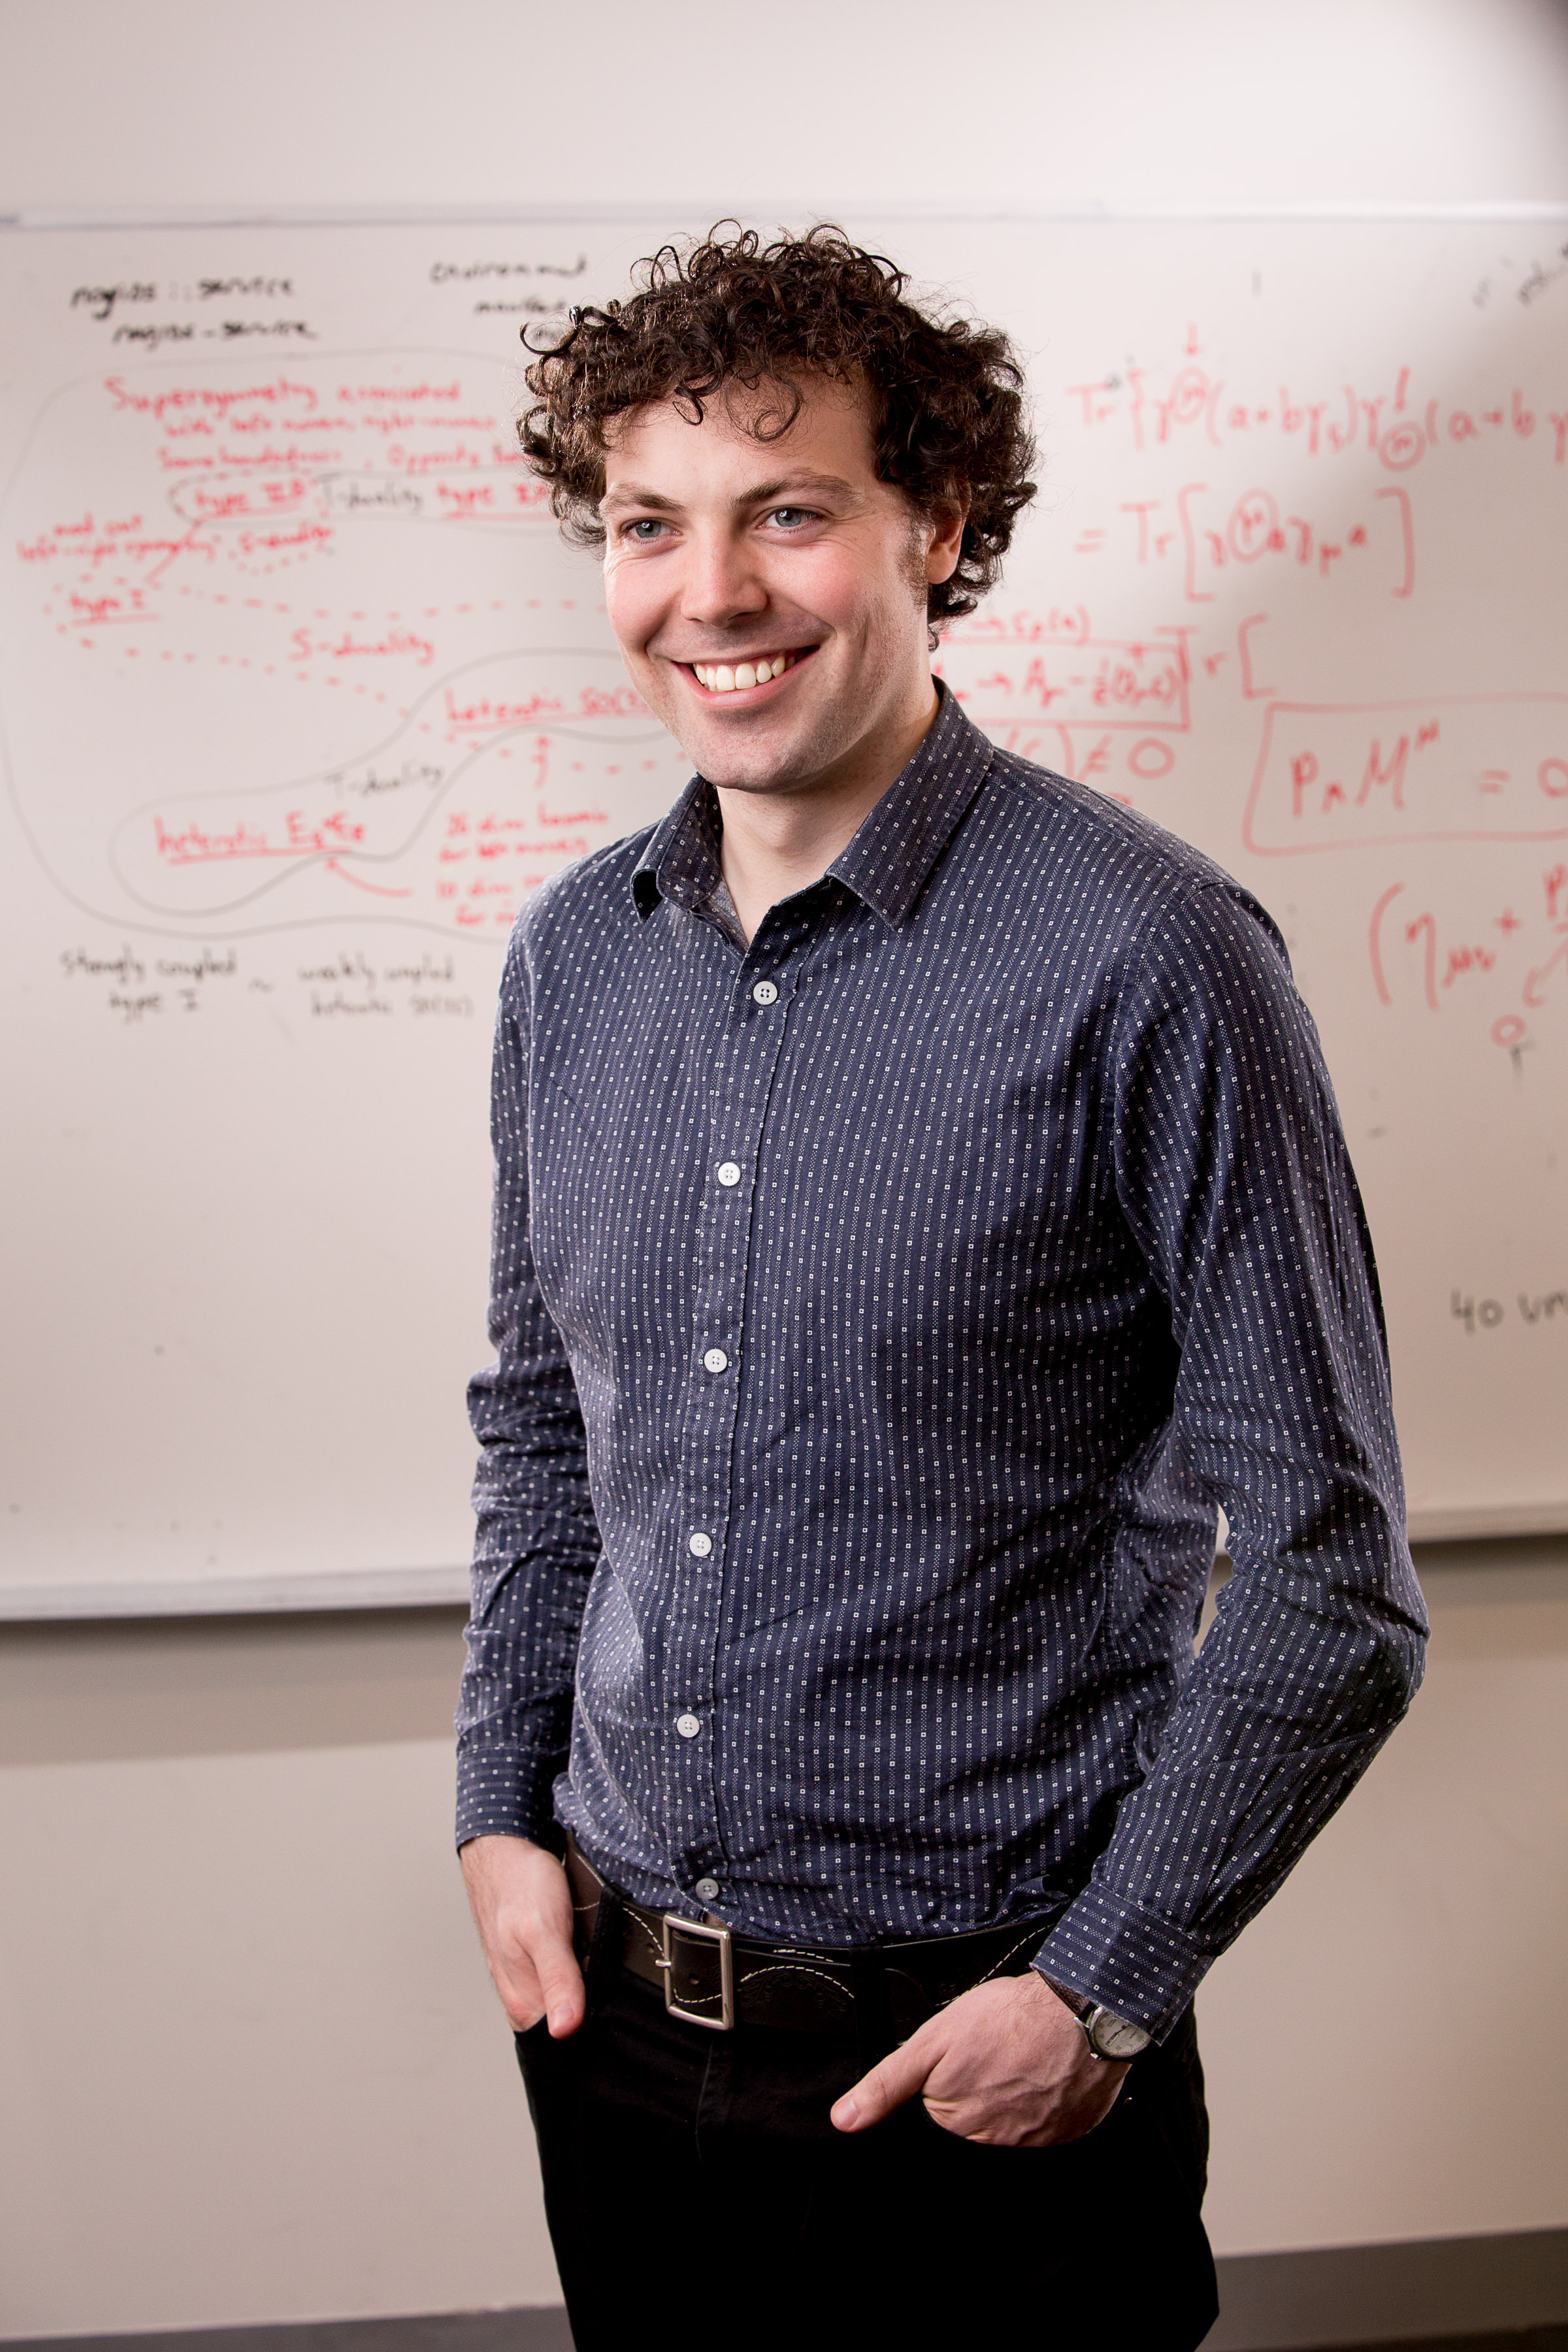 caltech physics phd thesis Assistant professor of physics, caltech aps dissertation winner cosmology, particle physics, gravitational waves phd 2001, u chicago.